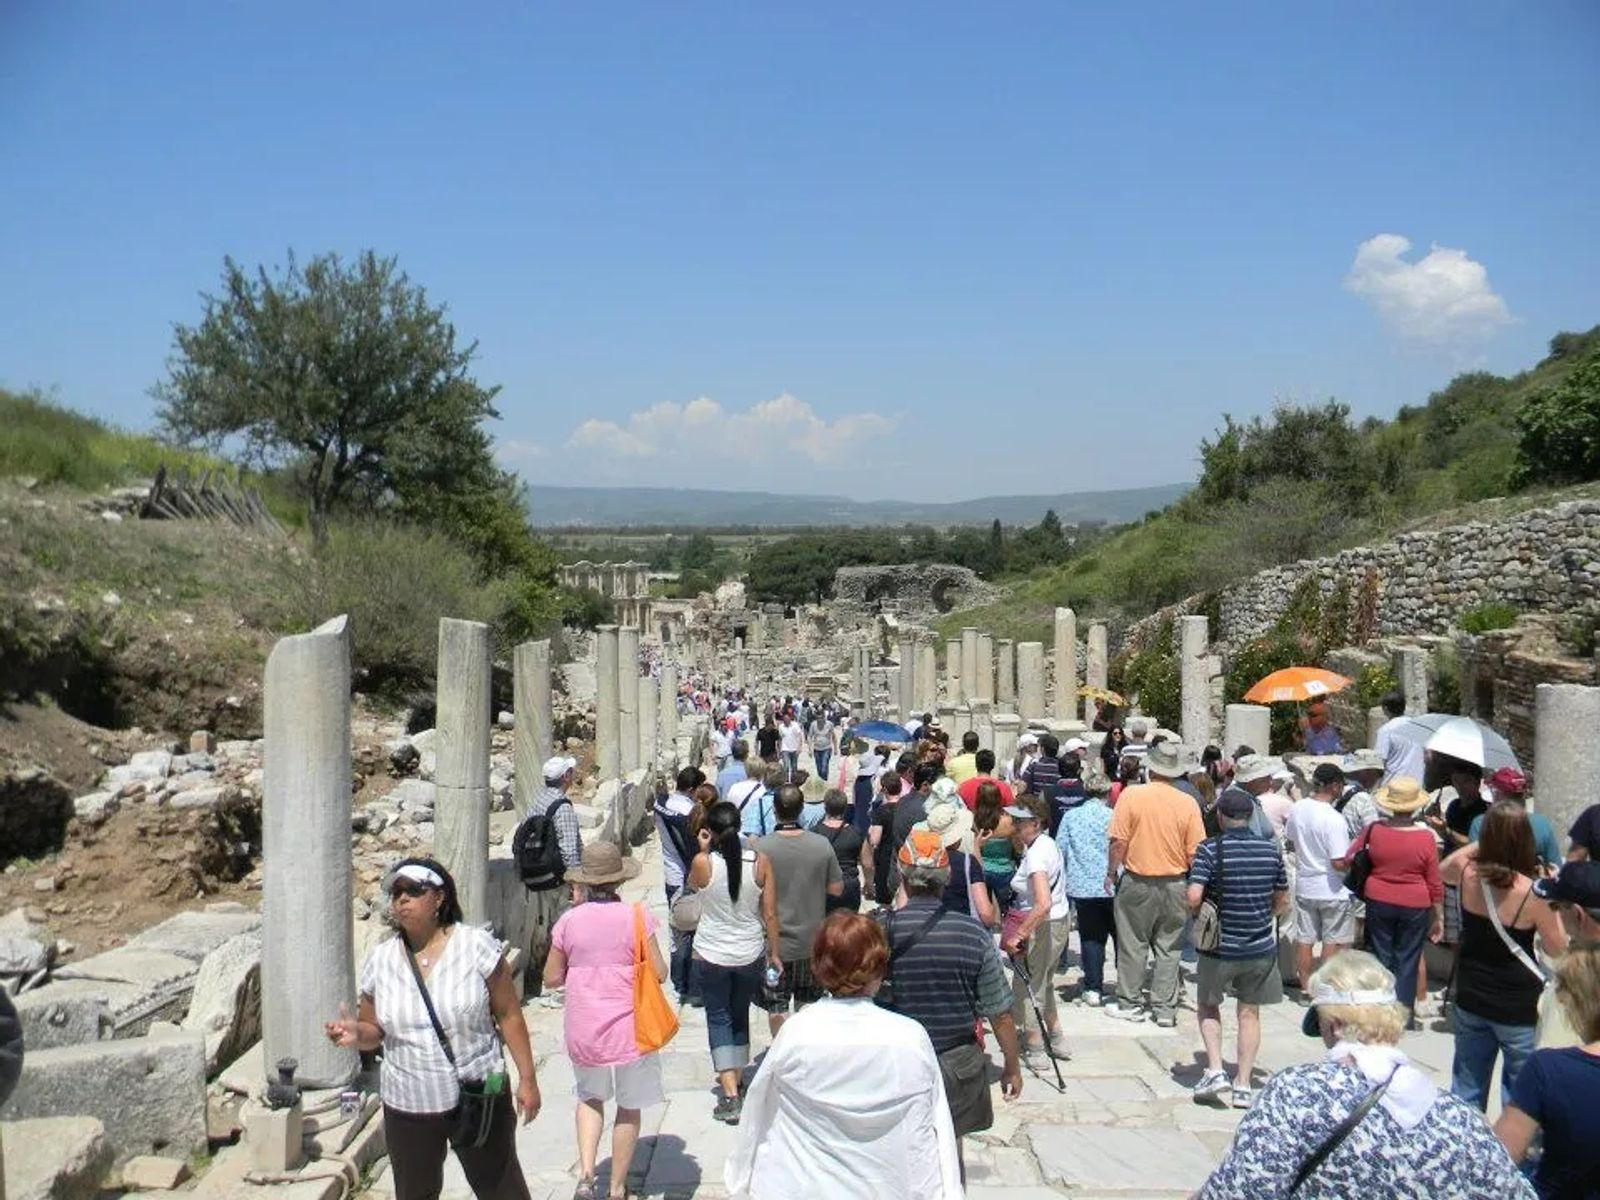 Visit Ephesus on a shore excursion - Culture Trekking - #Ephesus #EphesusTurkey #HistoryofEphesus